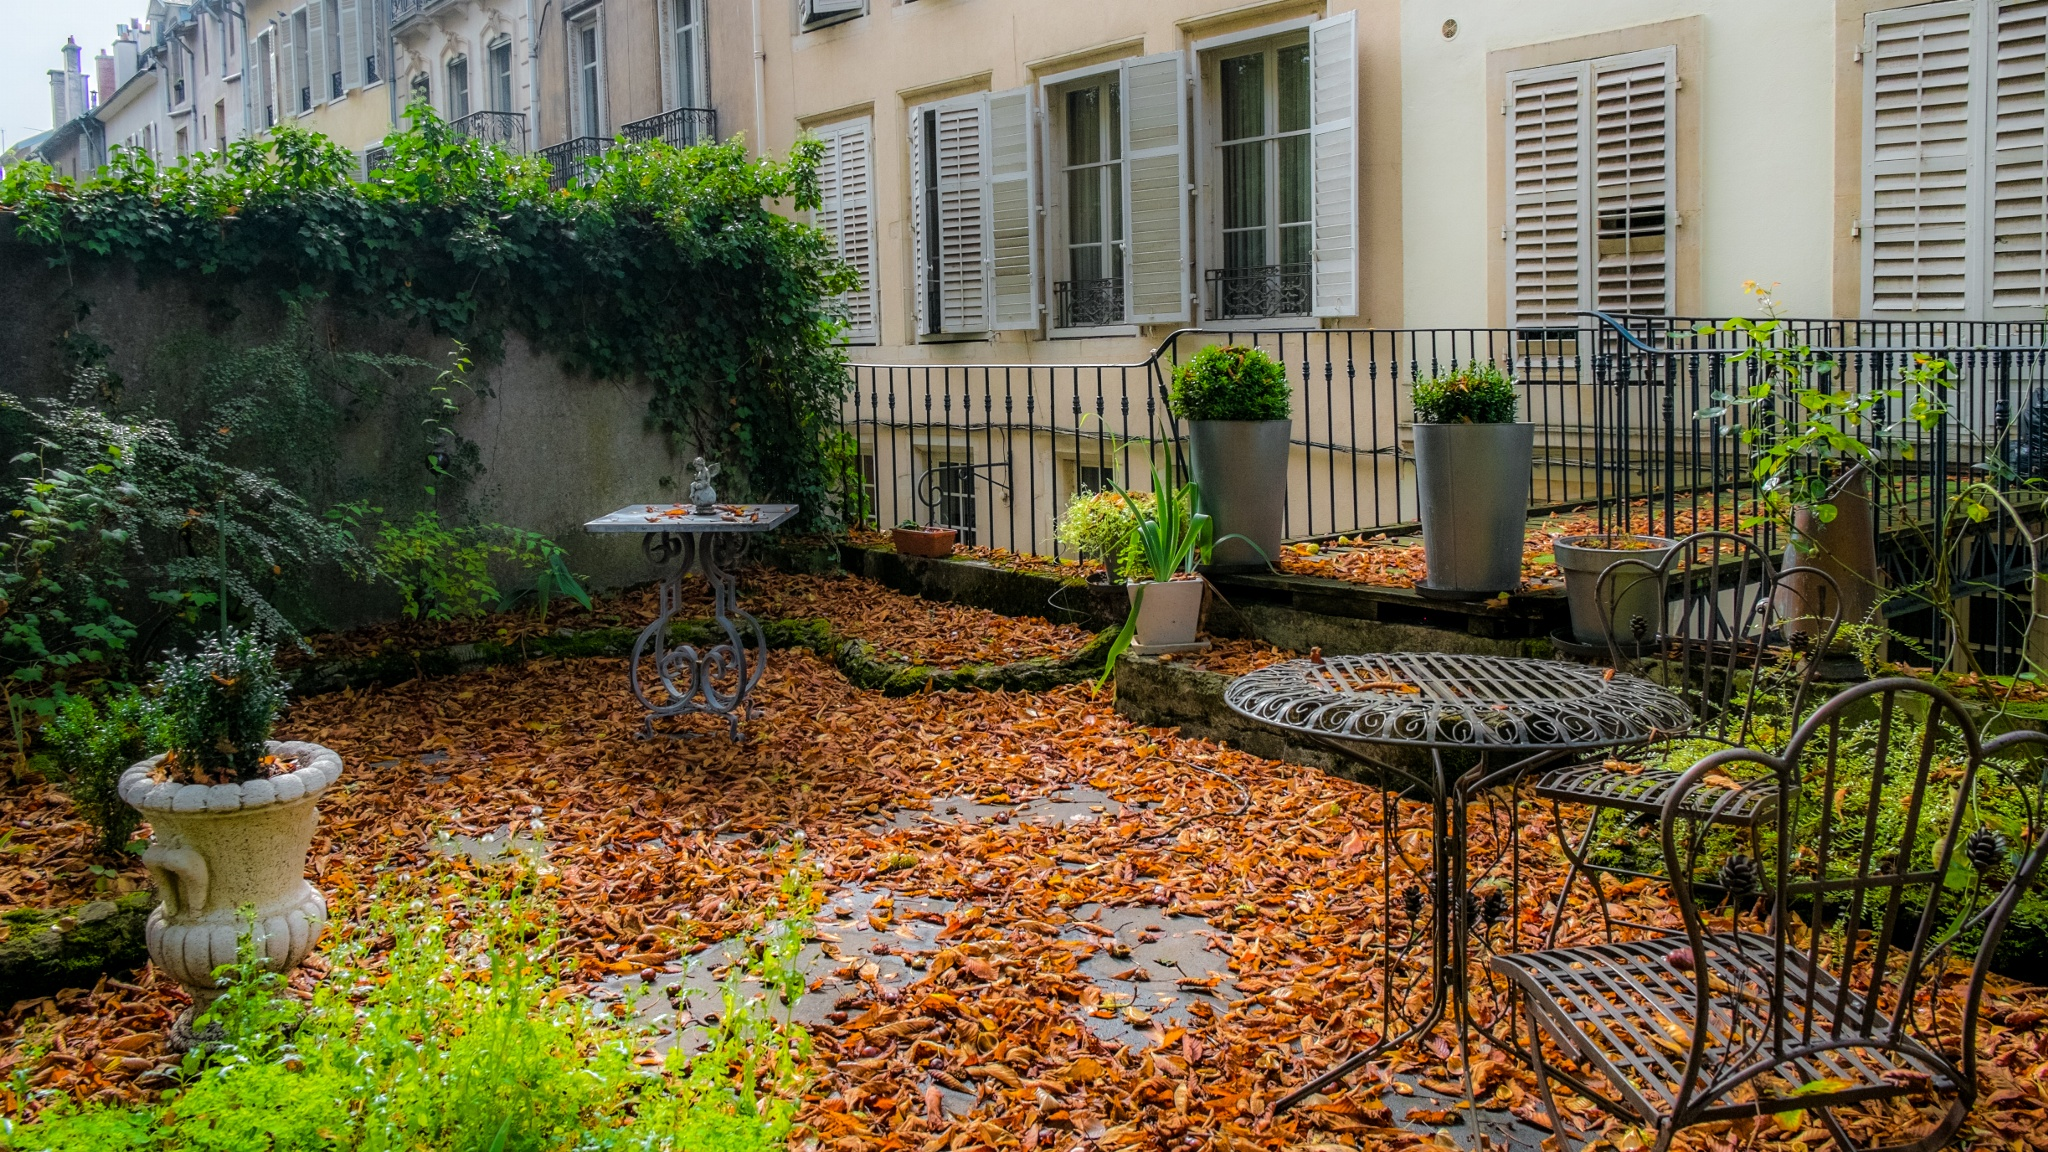 Autumn-in-town-by-domgauthey-on-px-wallpaper-wp3003377